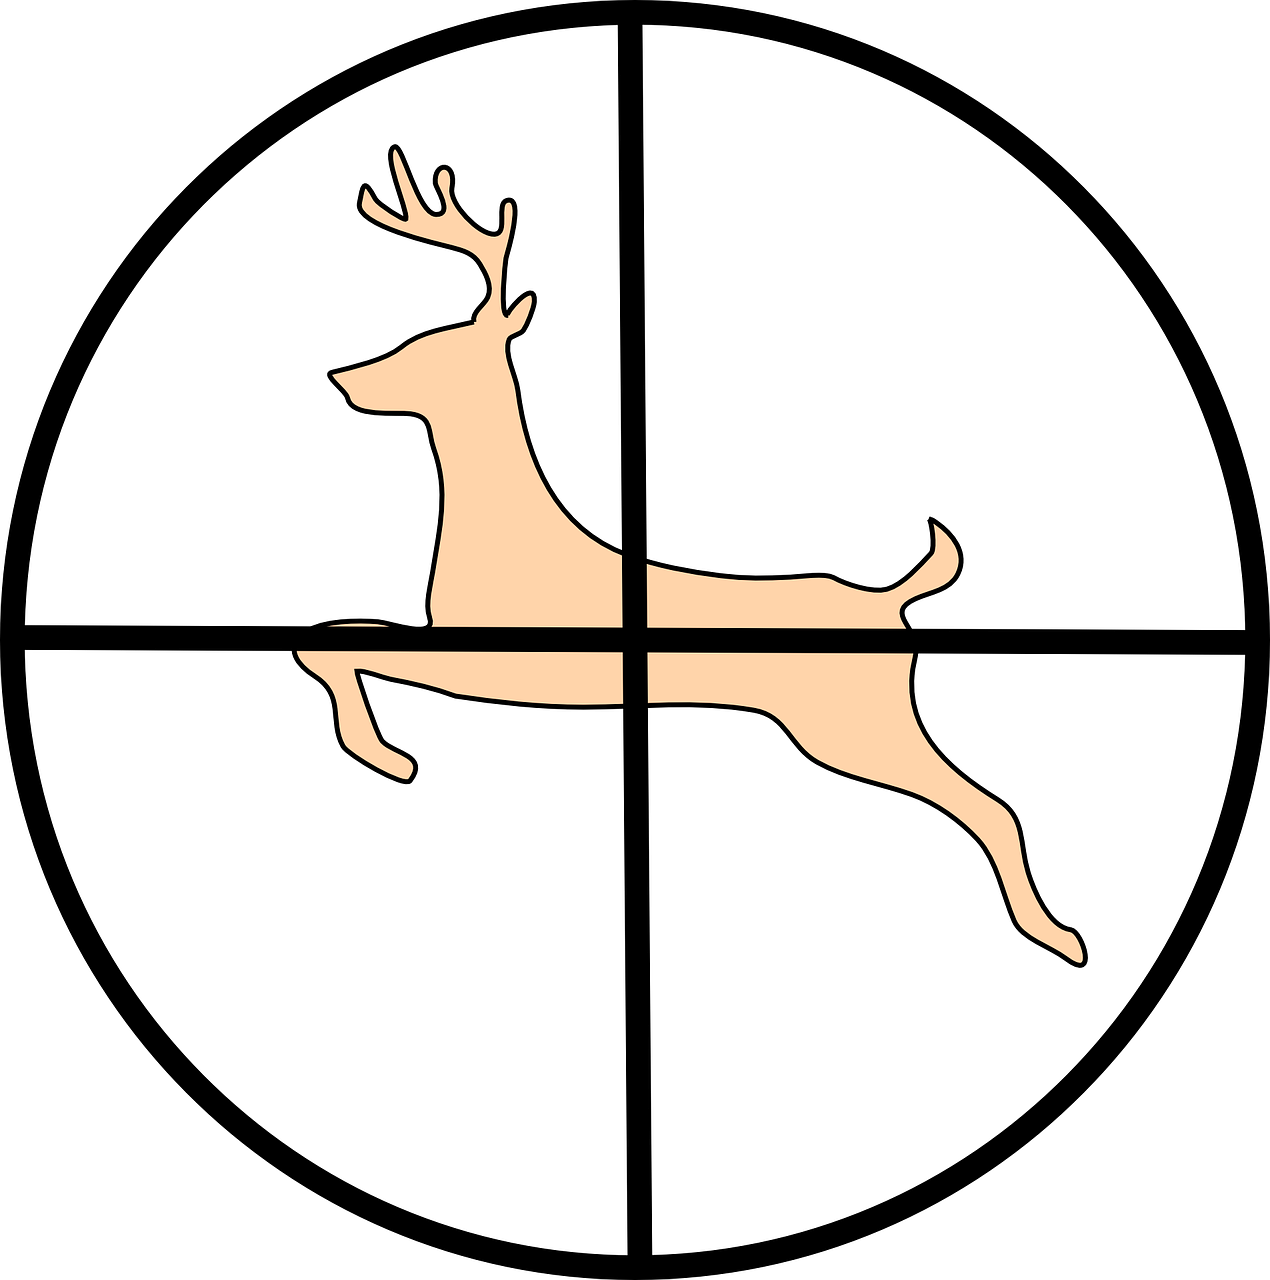 Cross hairs clipart clip free Crosshair Hunting Deer Animal PNG Image - Picpng clip free